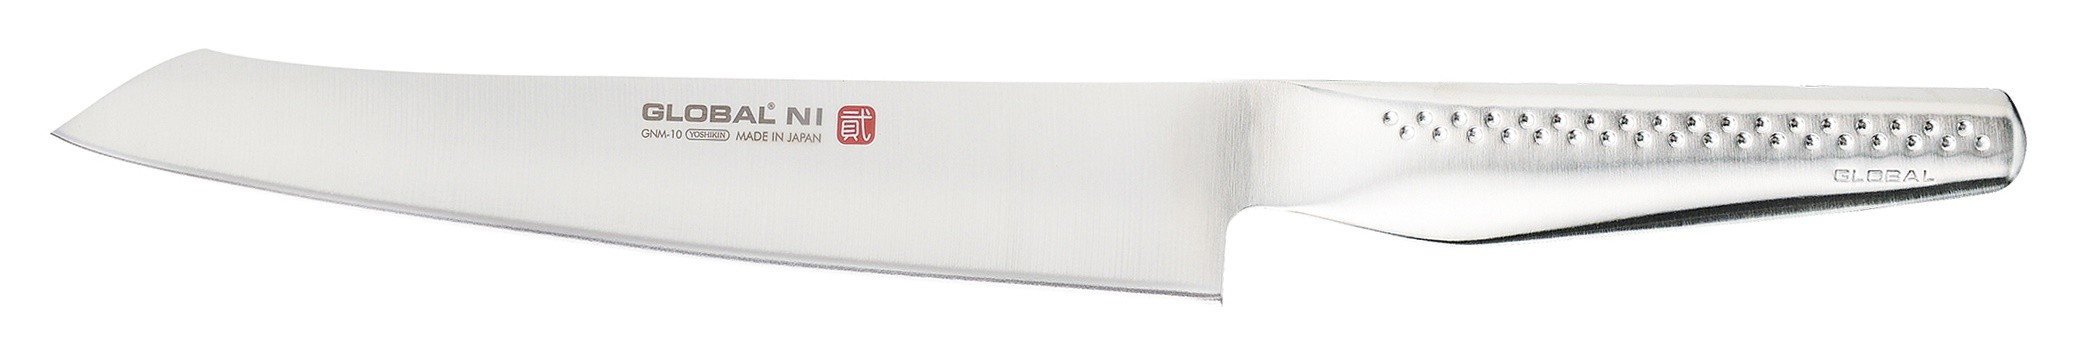 Global Knives NI Series 21cm Slicer Knife (GNM-10)